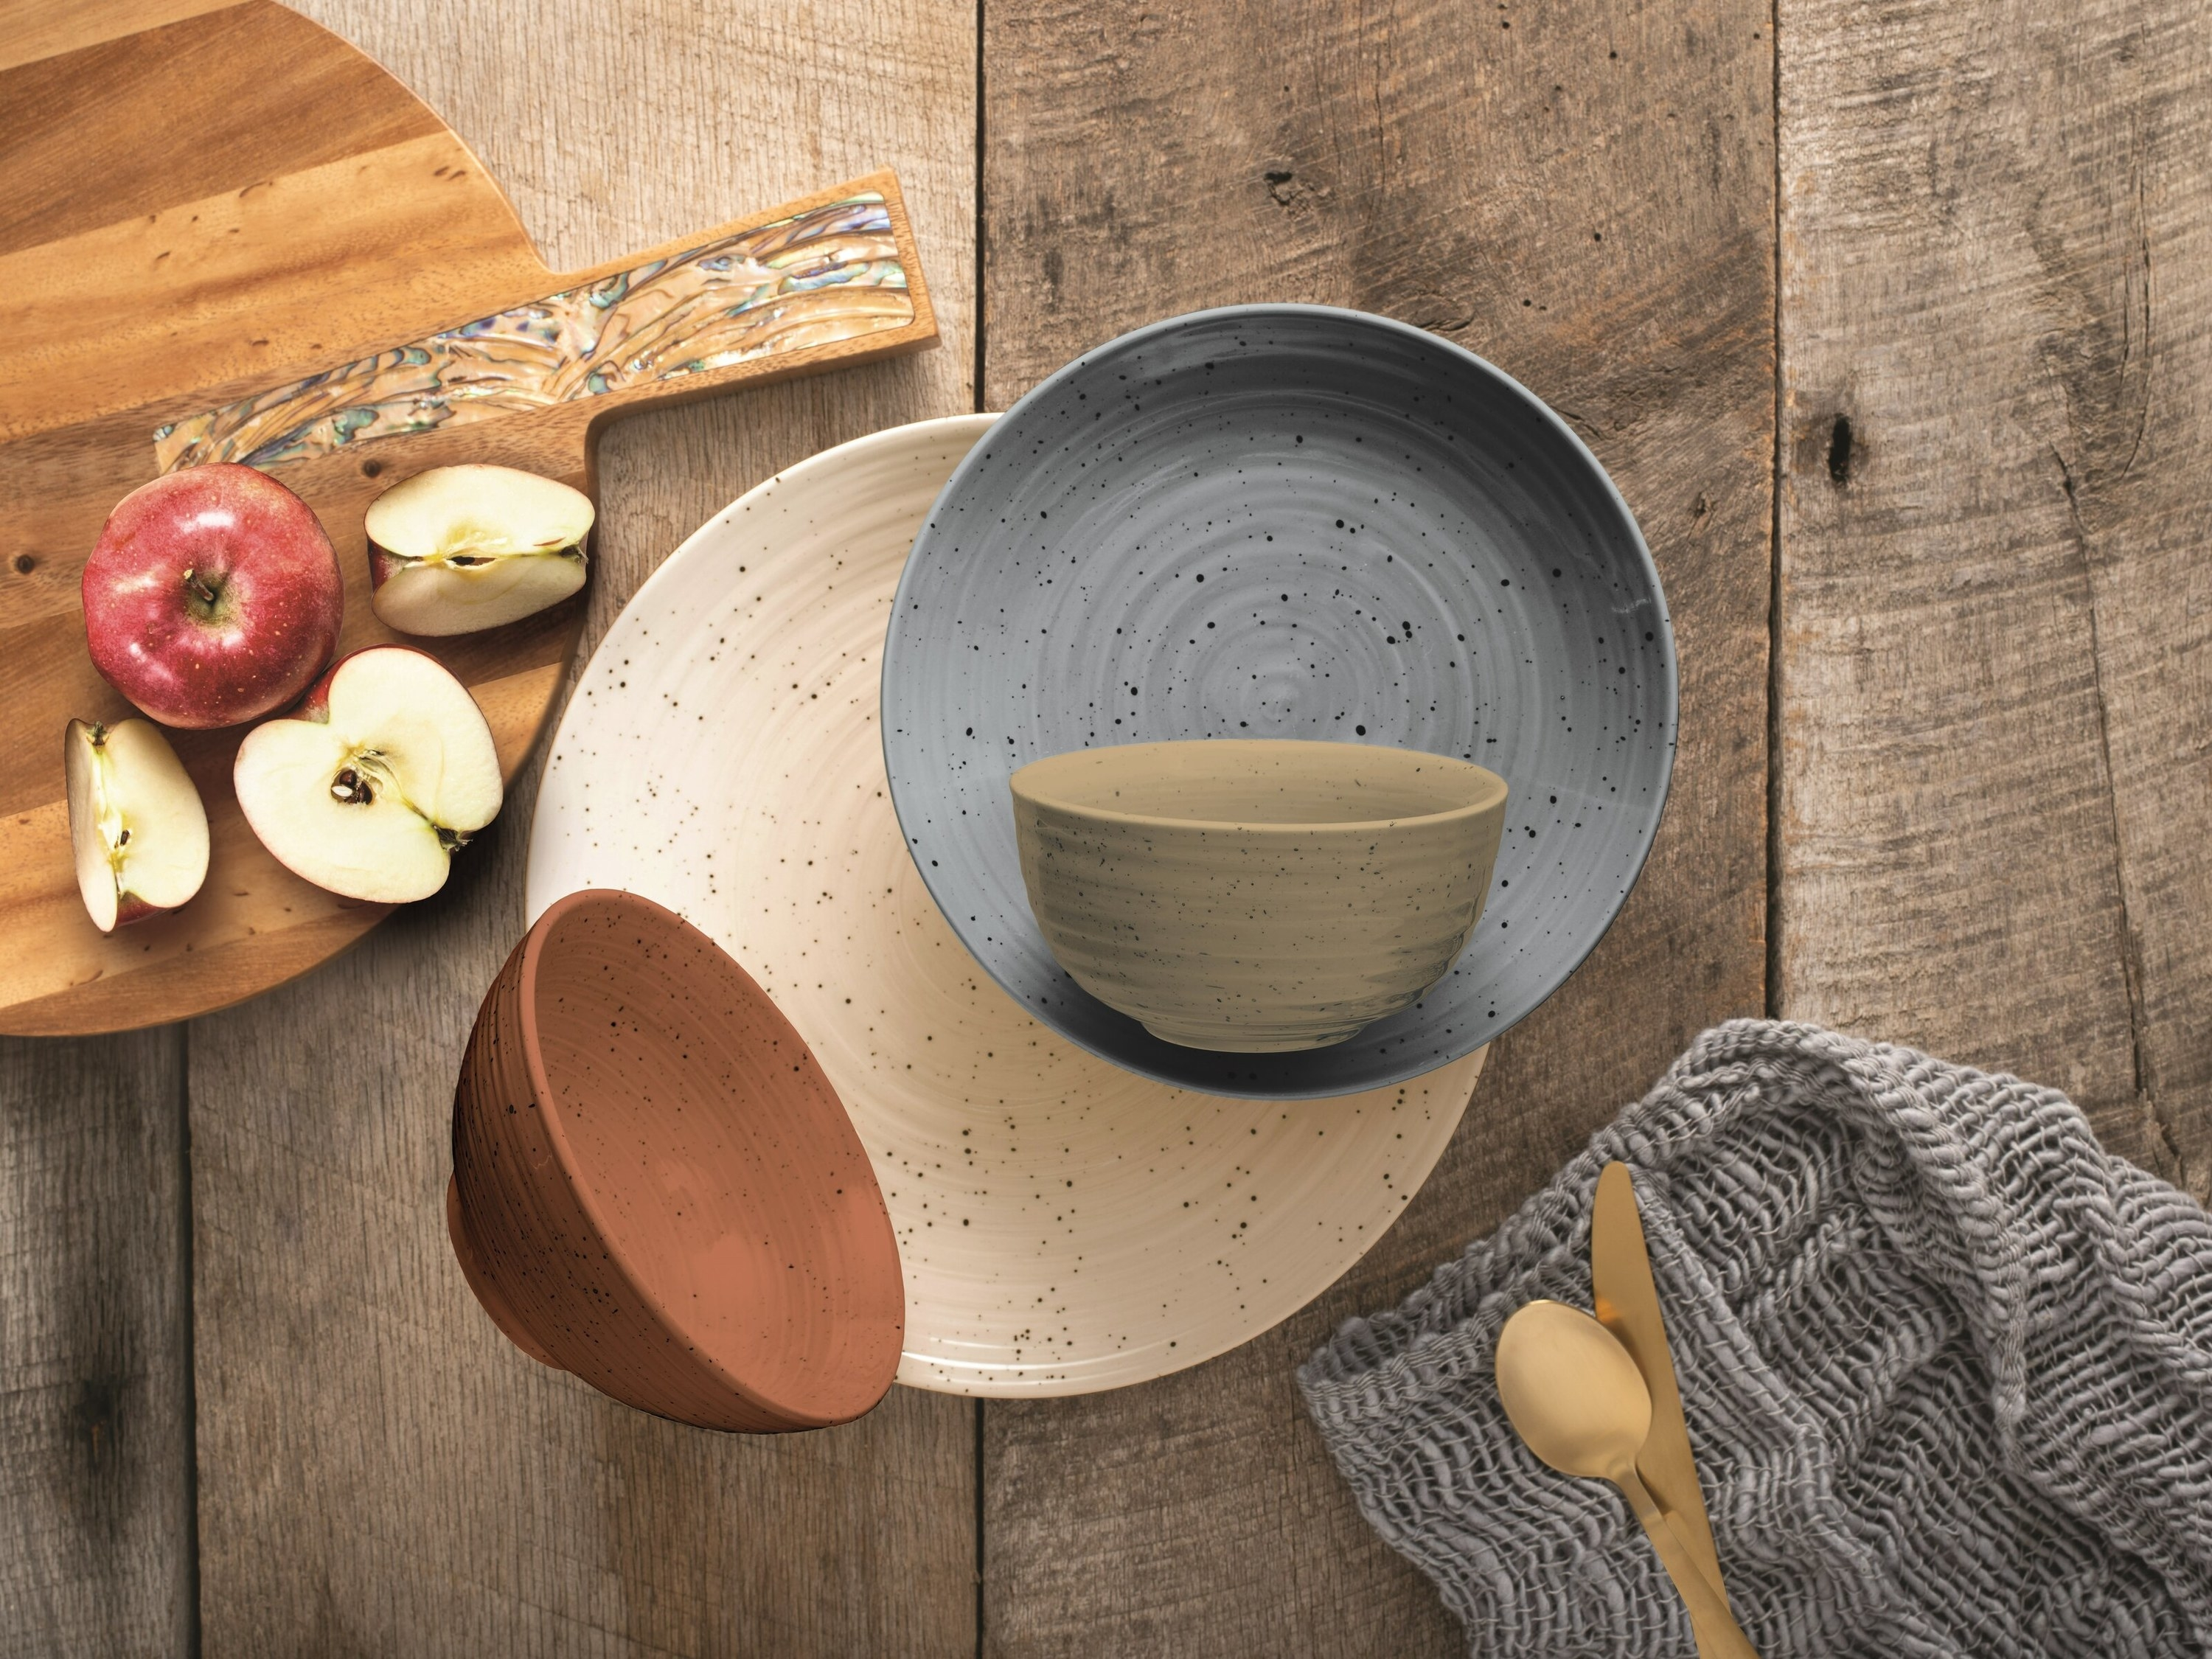 Dish set on wooden table